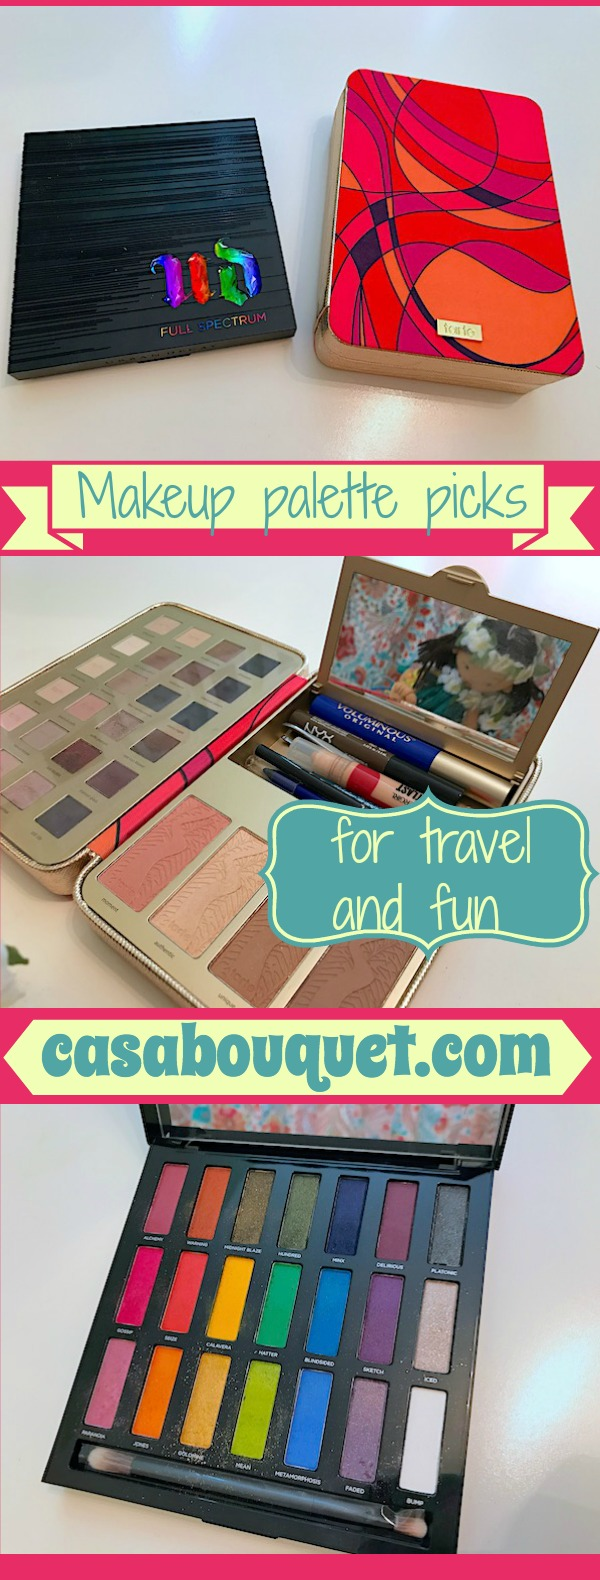 Makeup palette beauty buy picks for eyes and face. I'm sharing my travel choice (Tarte) and summer brights choice (Urban Decay).